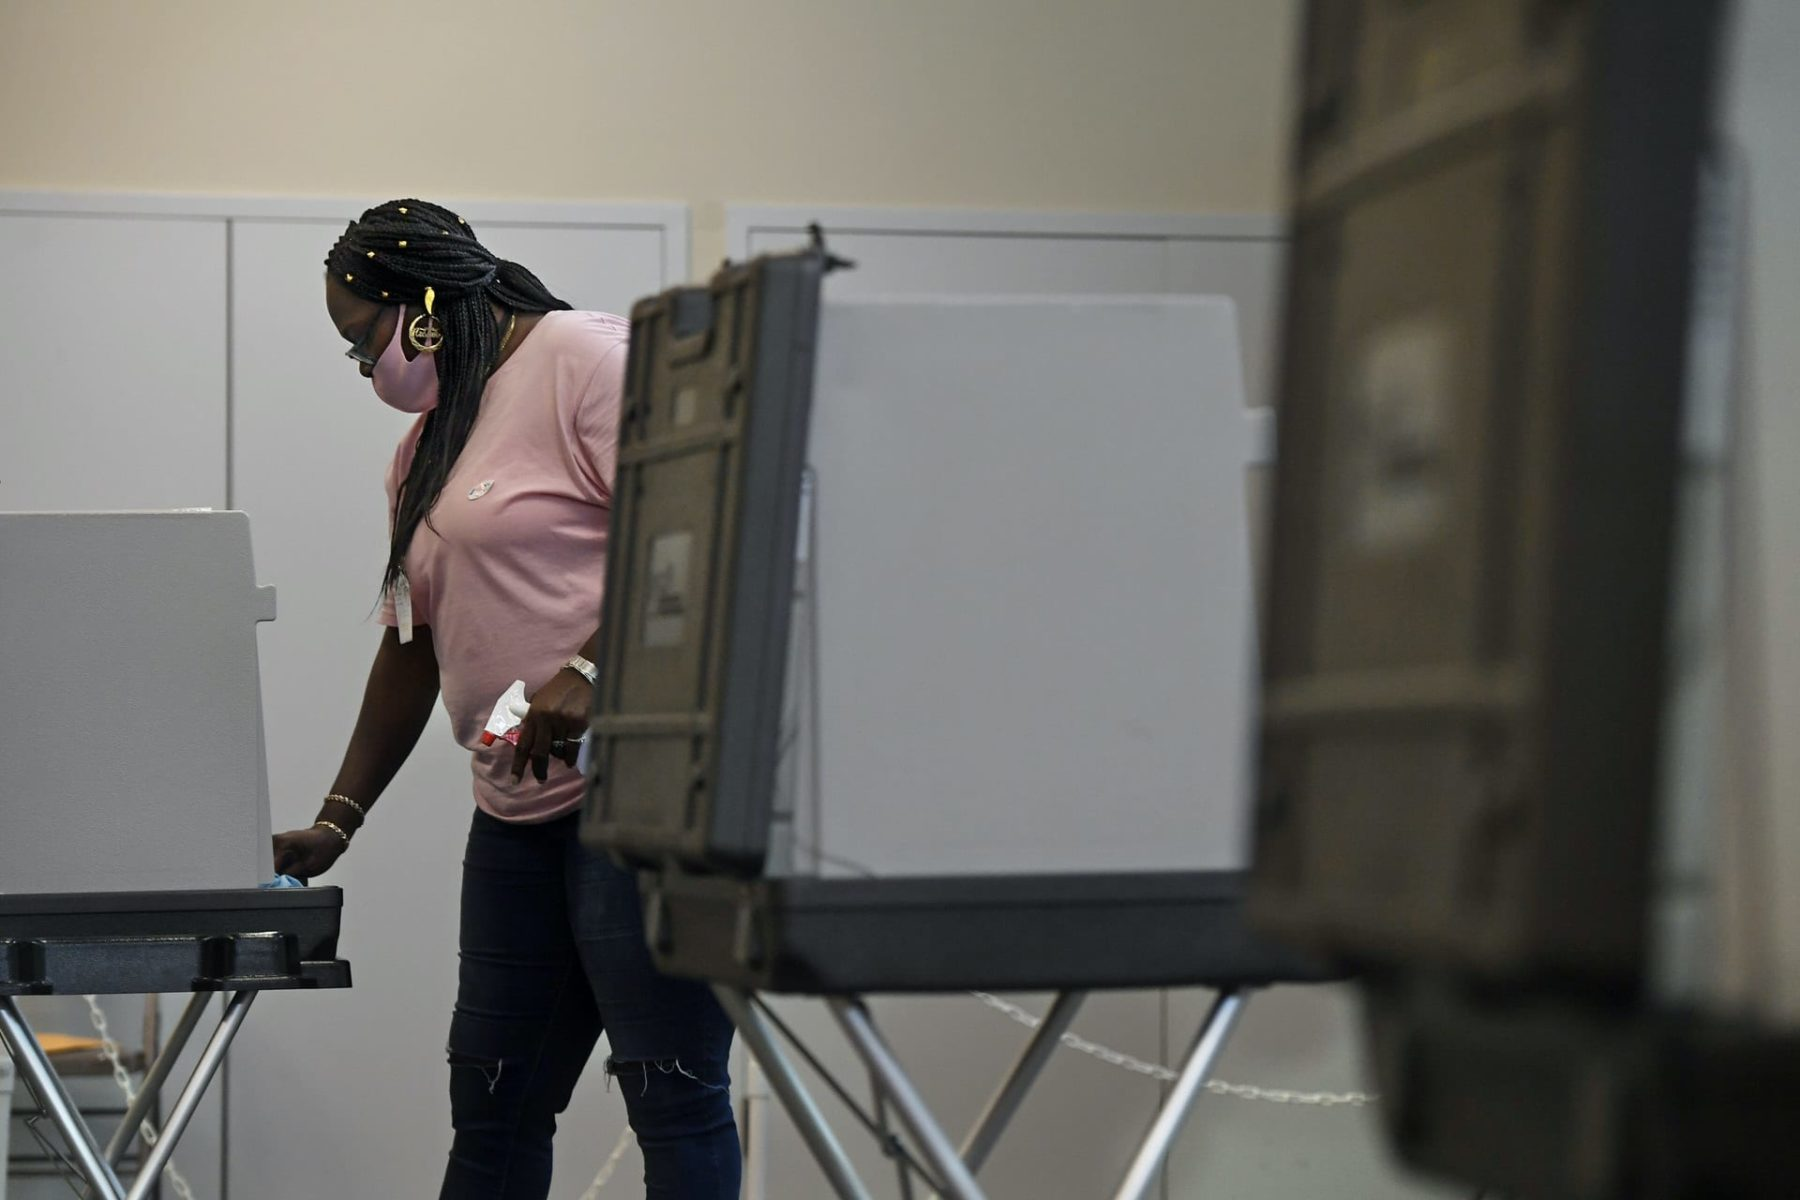 A woman cleans a voting booth.